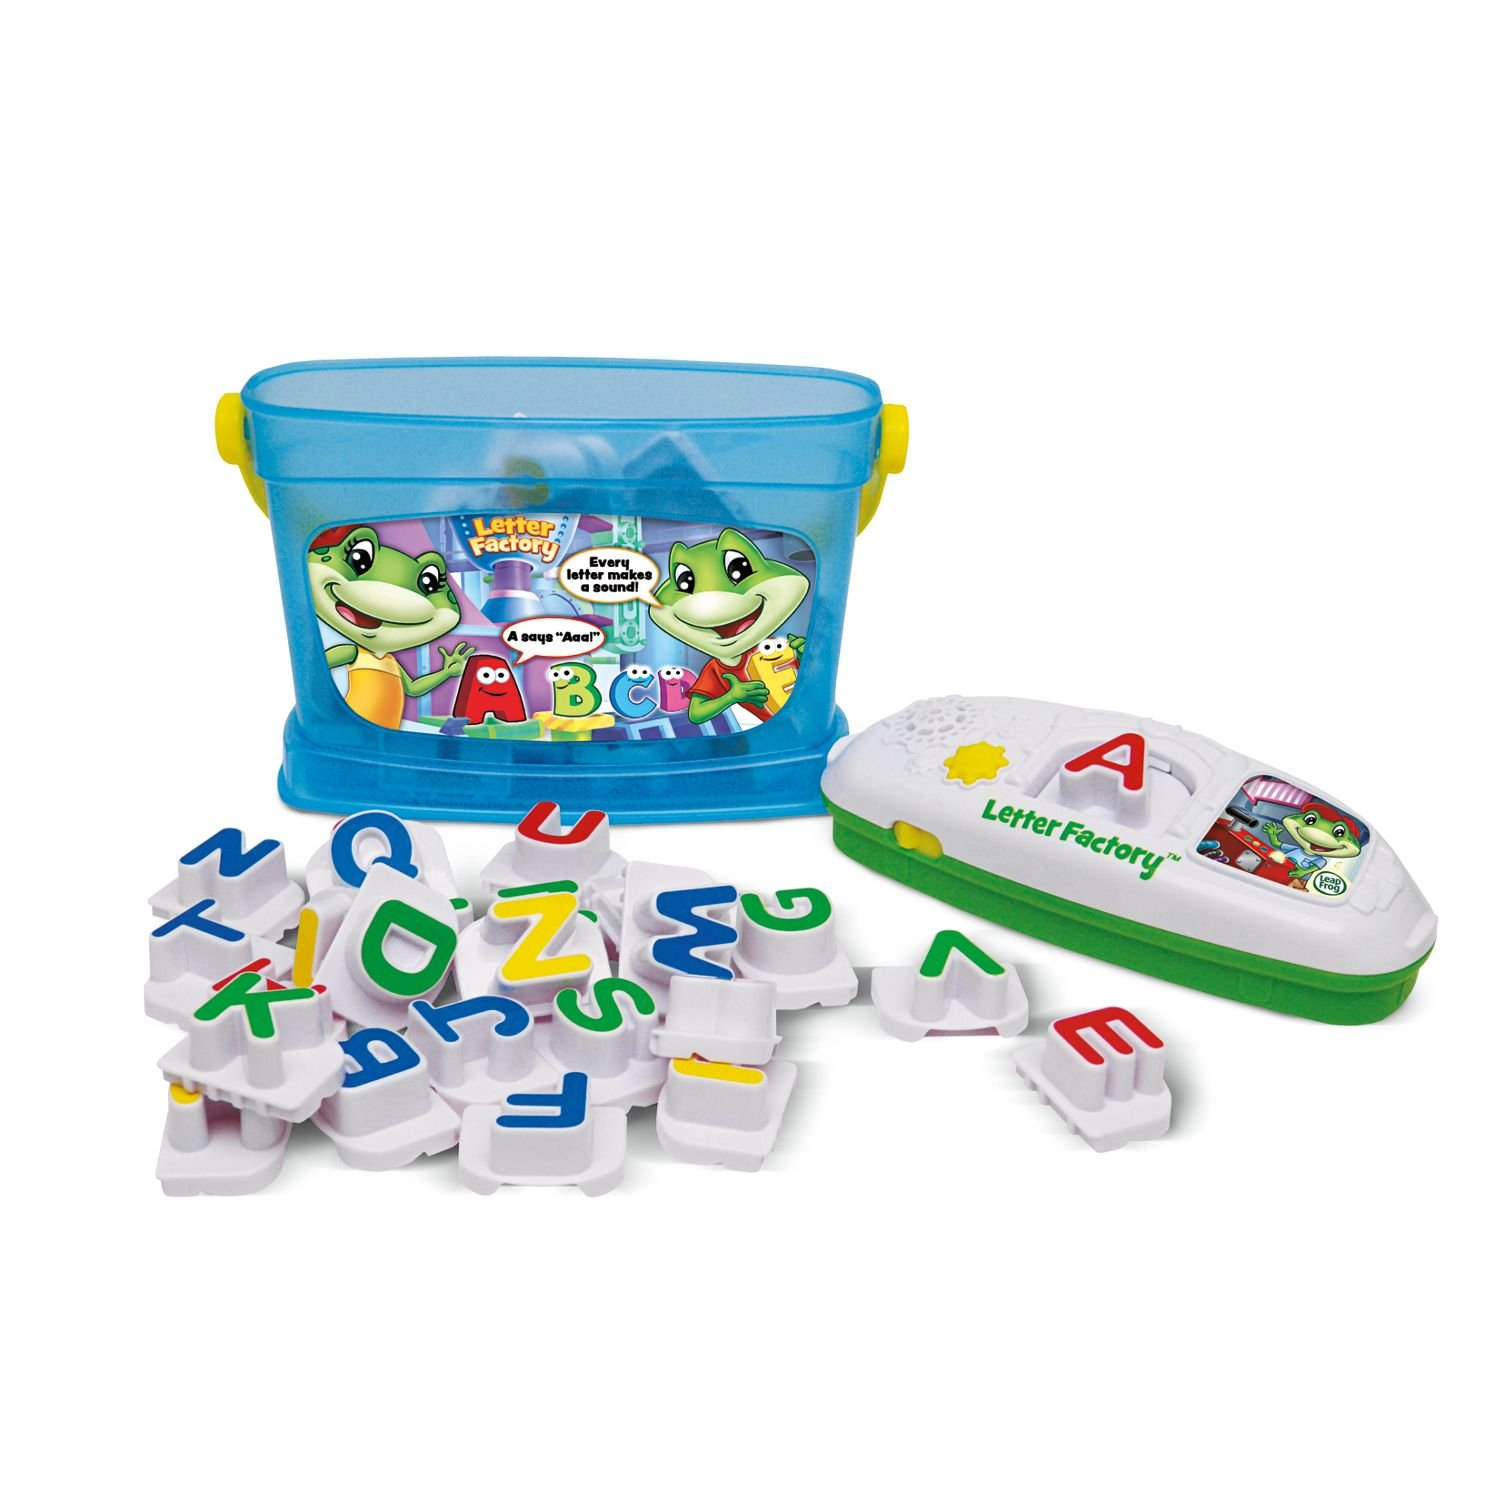 Key Features of the LeapFrog Letter Factory Phonics